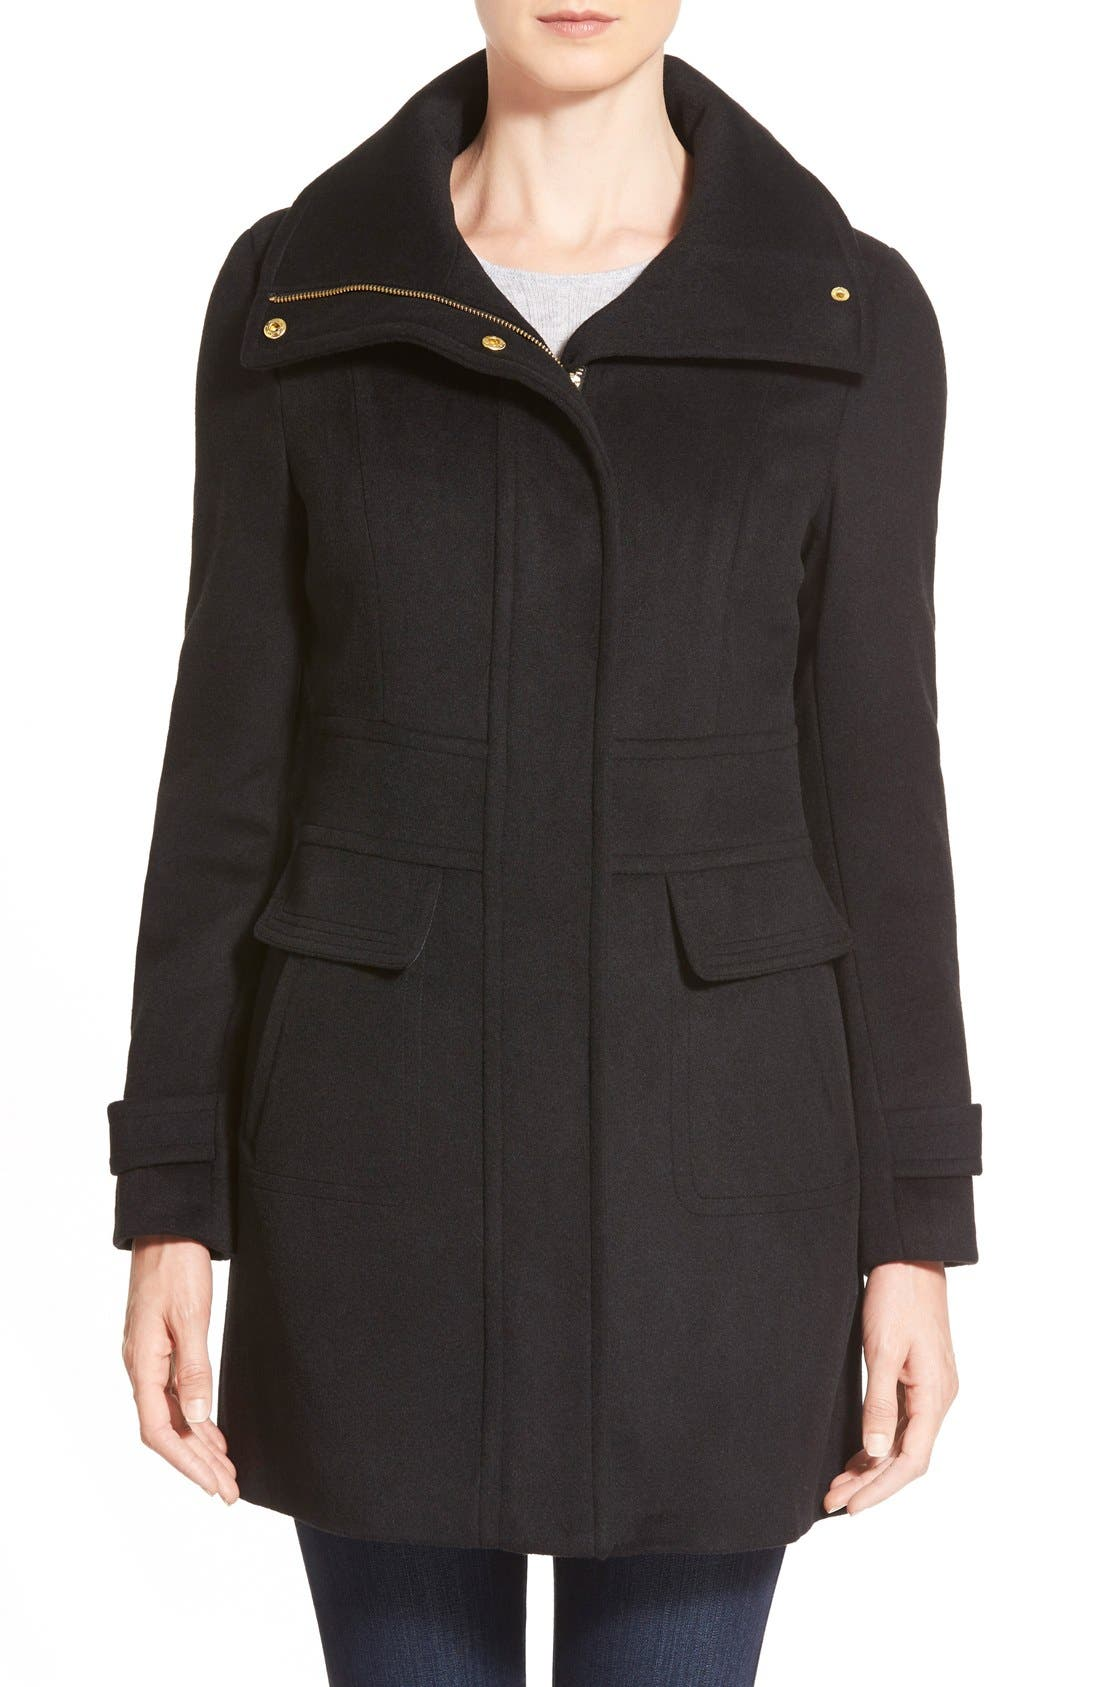 Alternate Image 1 Selected - Cole HaanSignature Stand Collar Wool Blend Coat